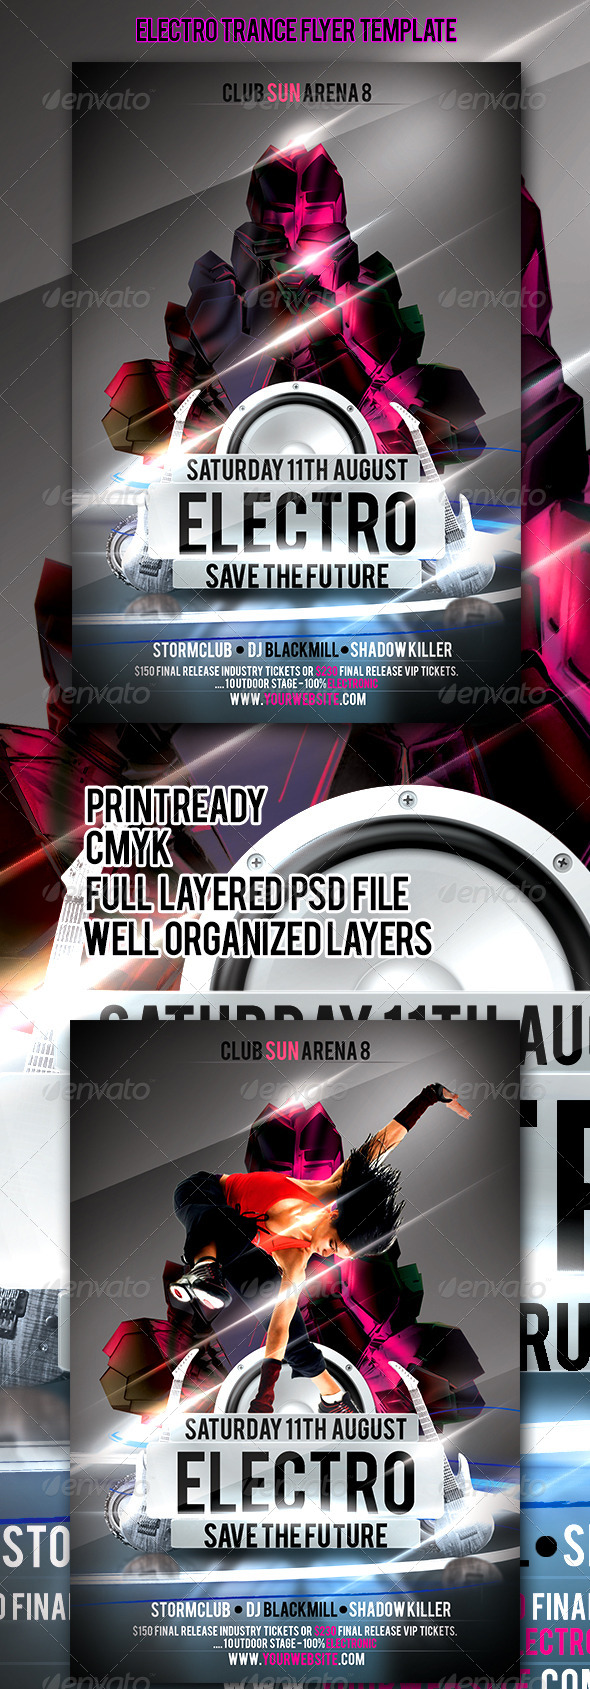 GraphicRiver Electro Trance Flyer Template 4503241